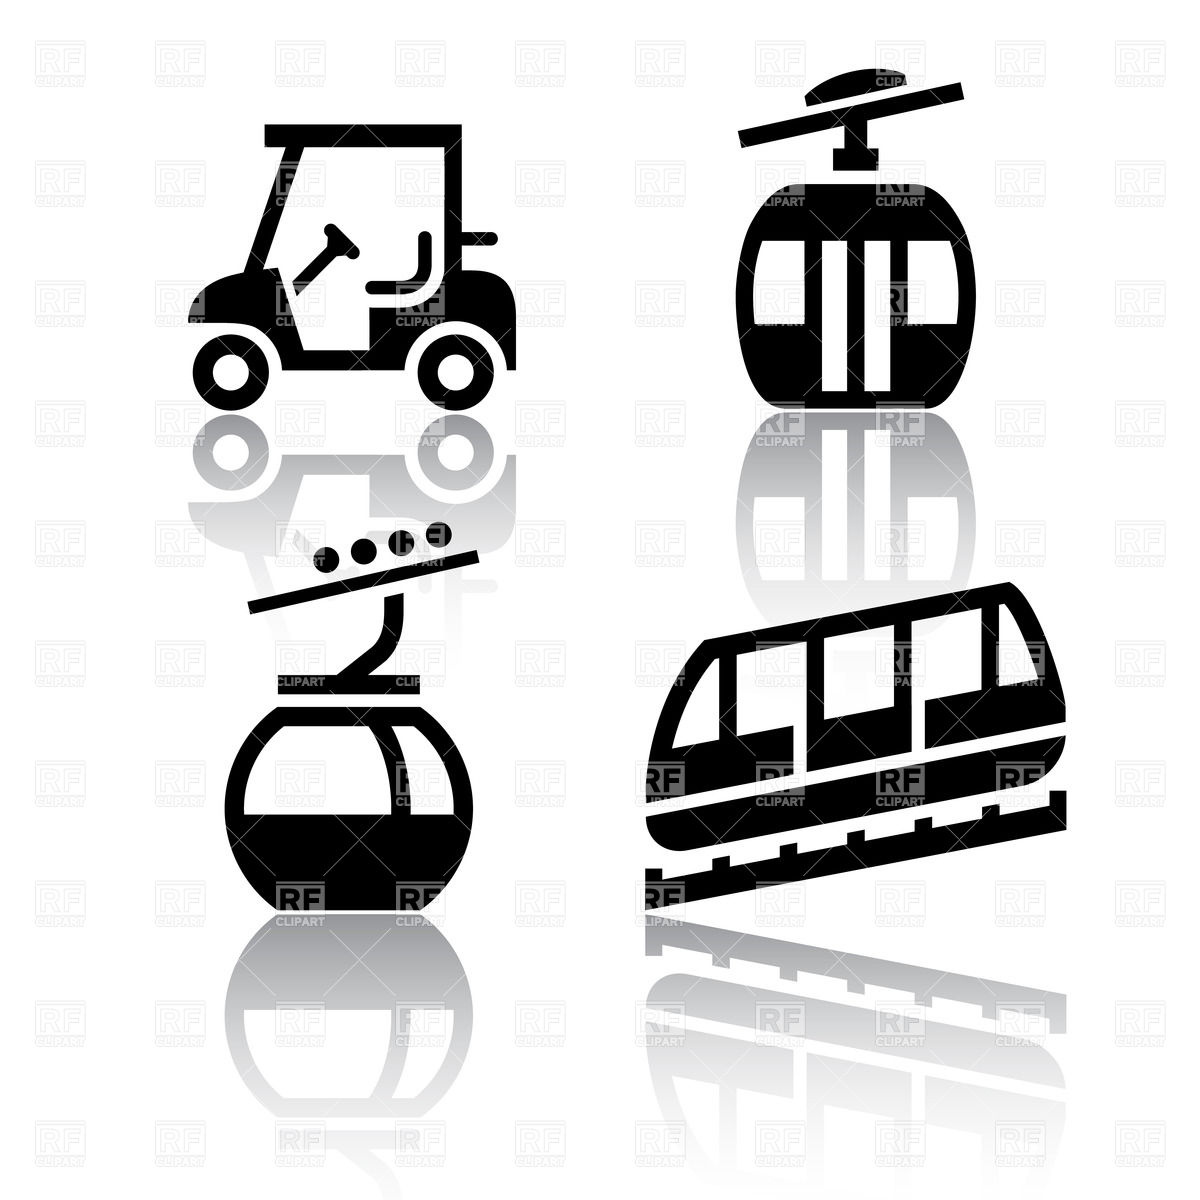 Funicular (cable railway) and golf cart Vector Image #18110.